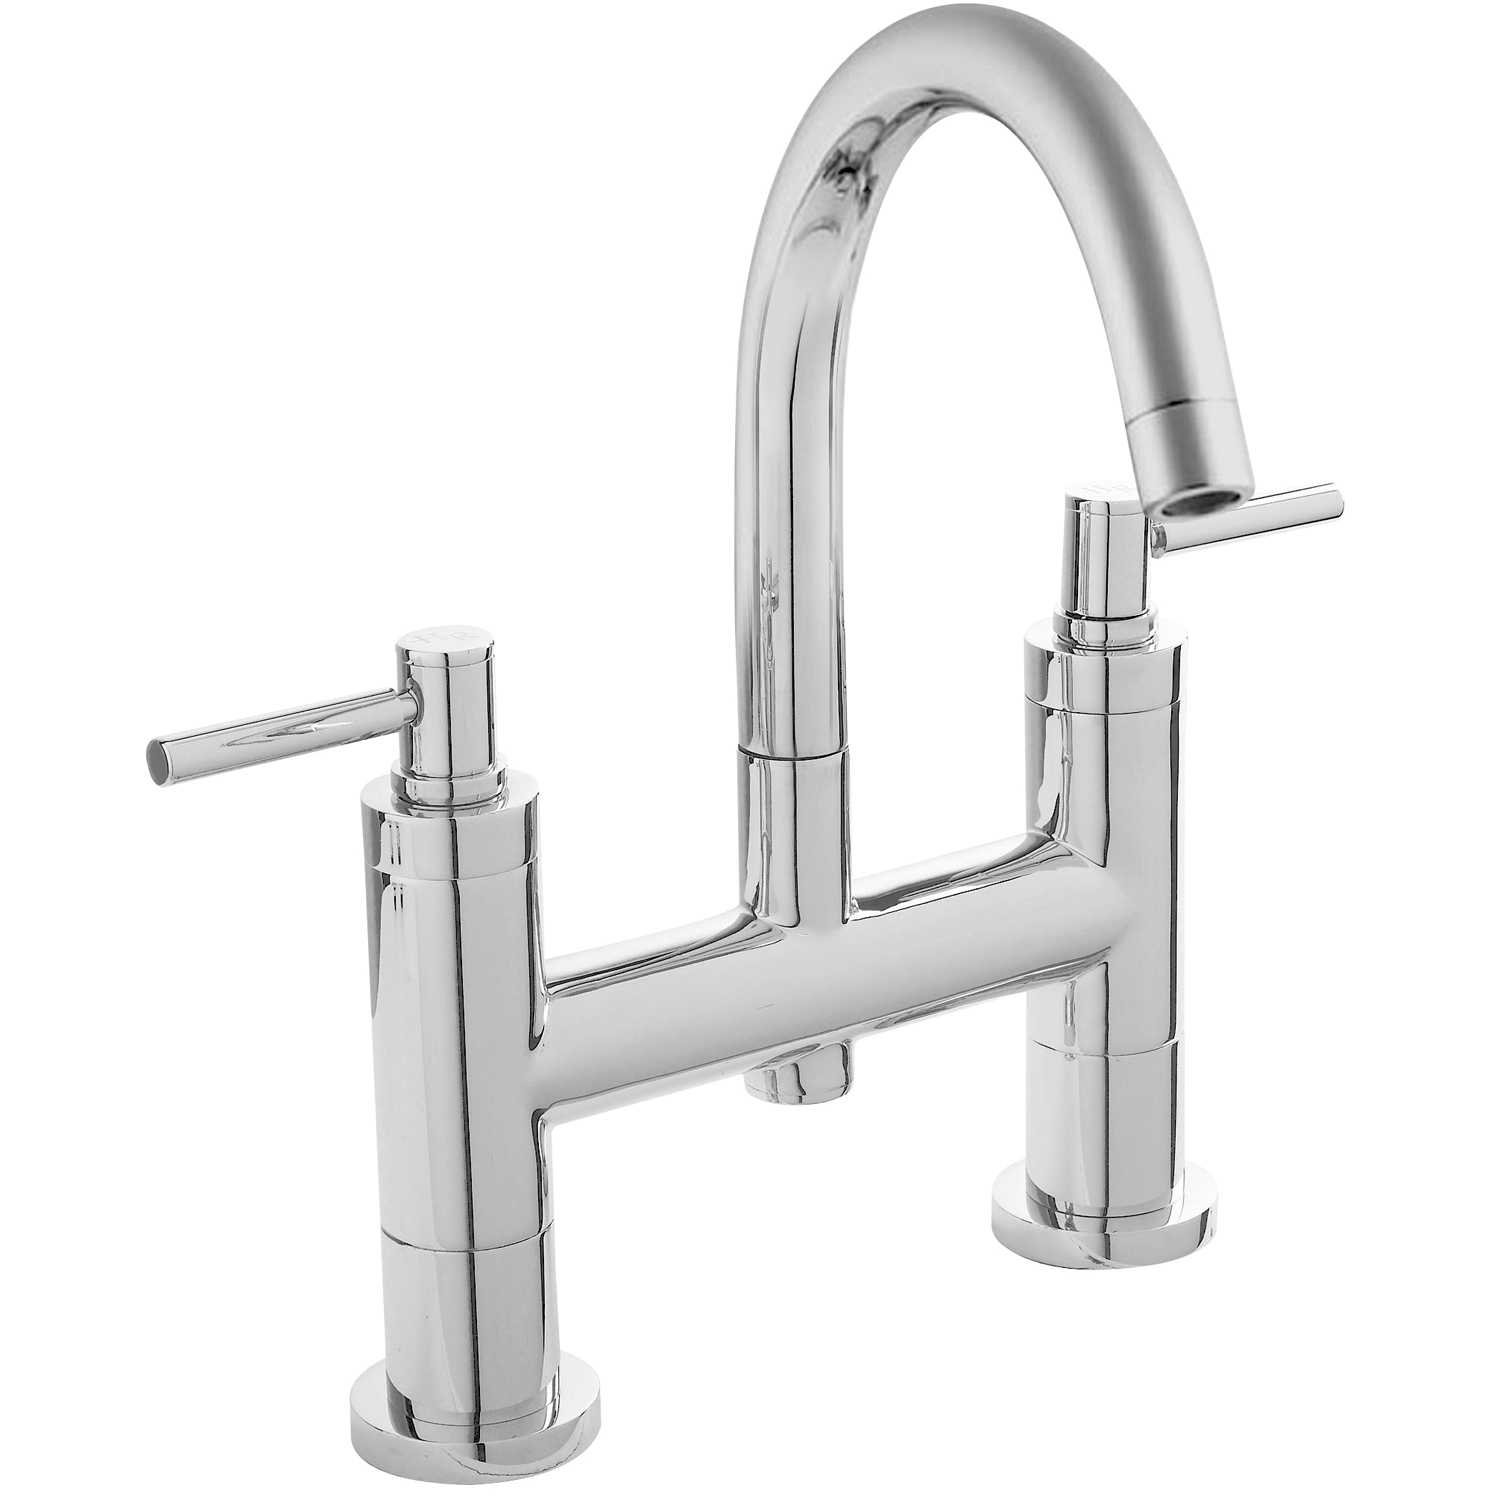 Hudson Reed Tec Lever Basin Mixer Tap and Bath Filler Tap, Chrome-0